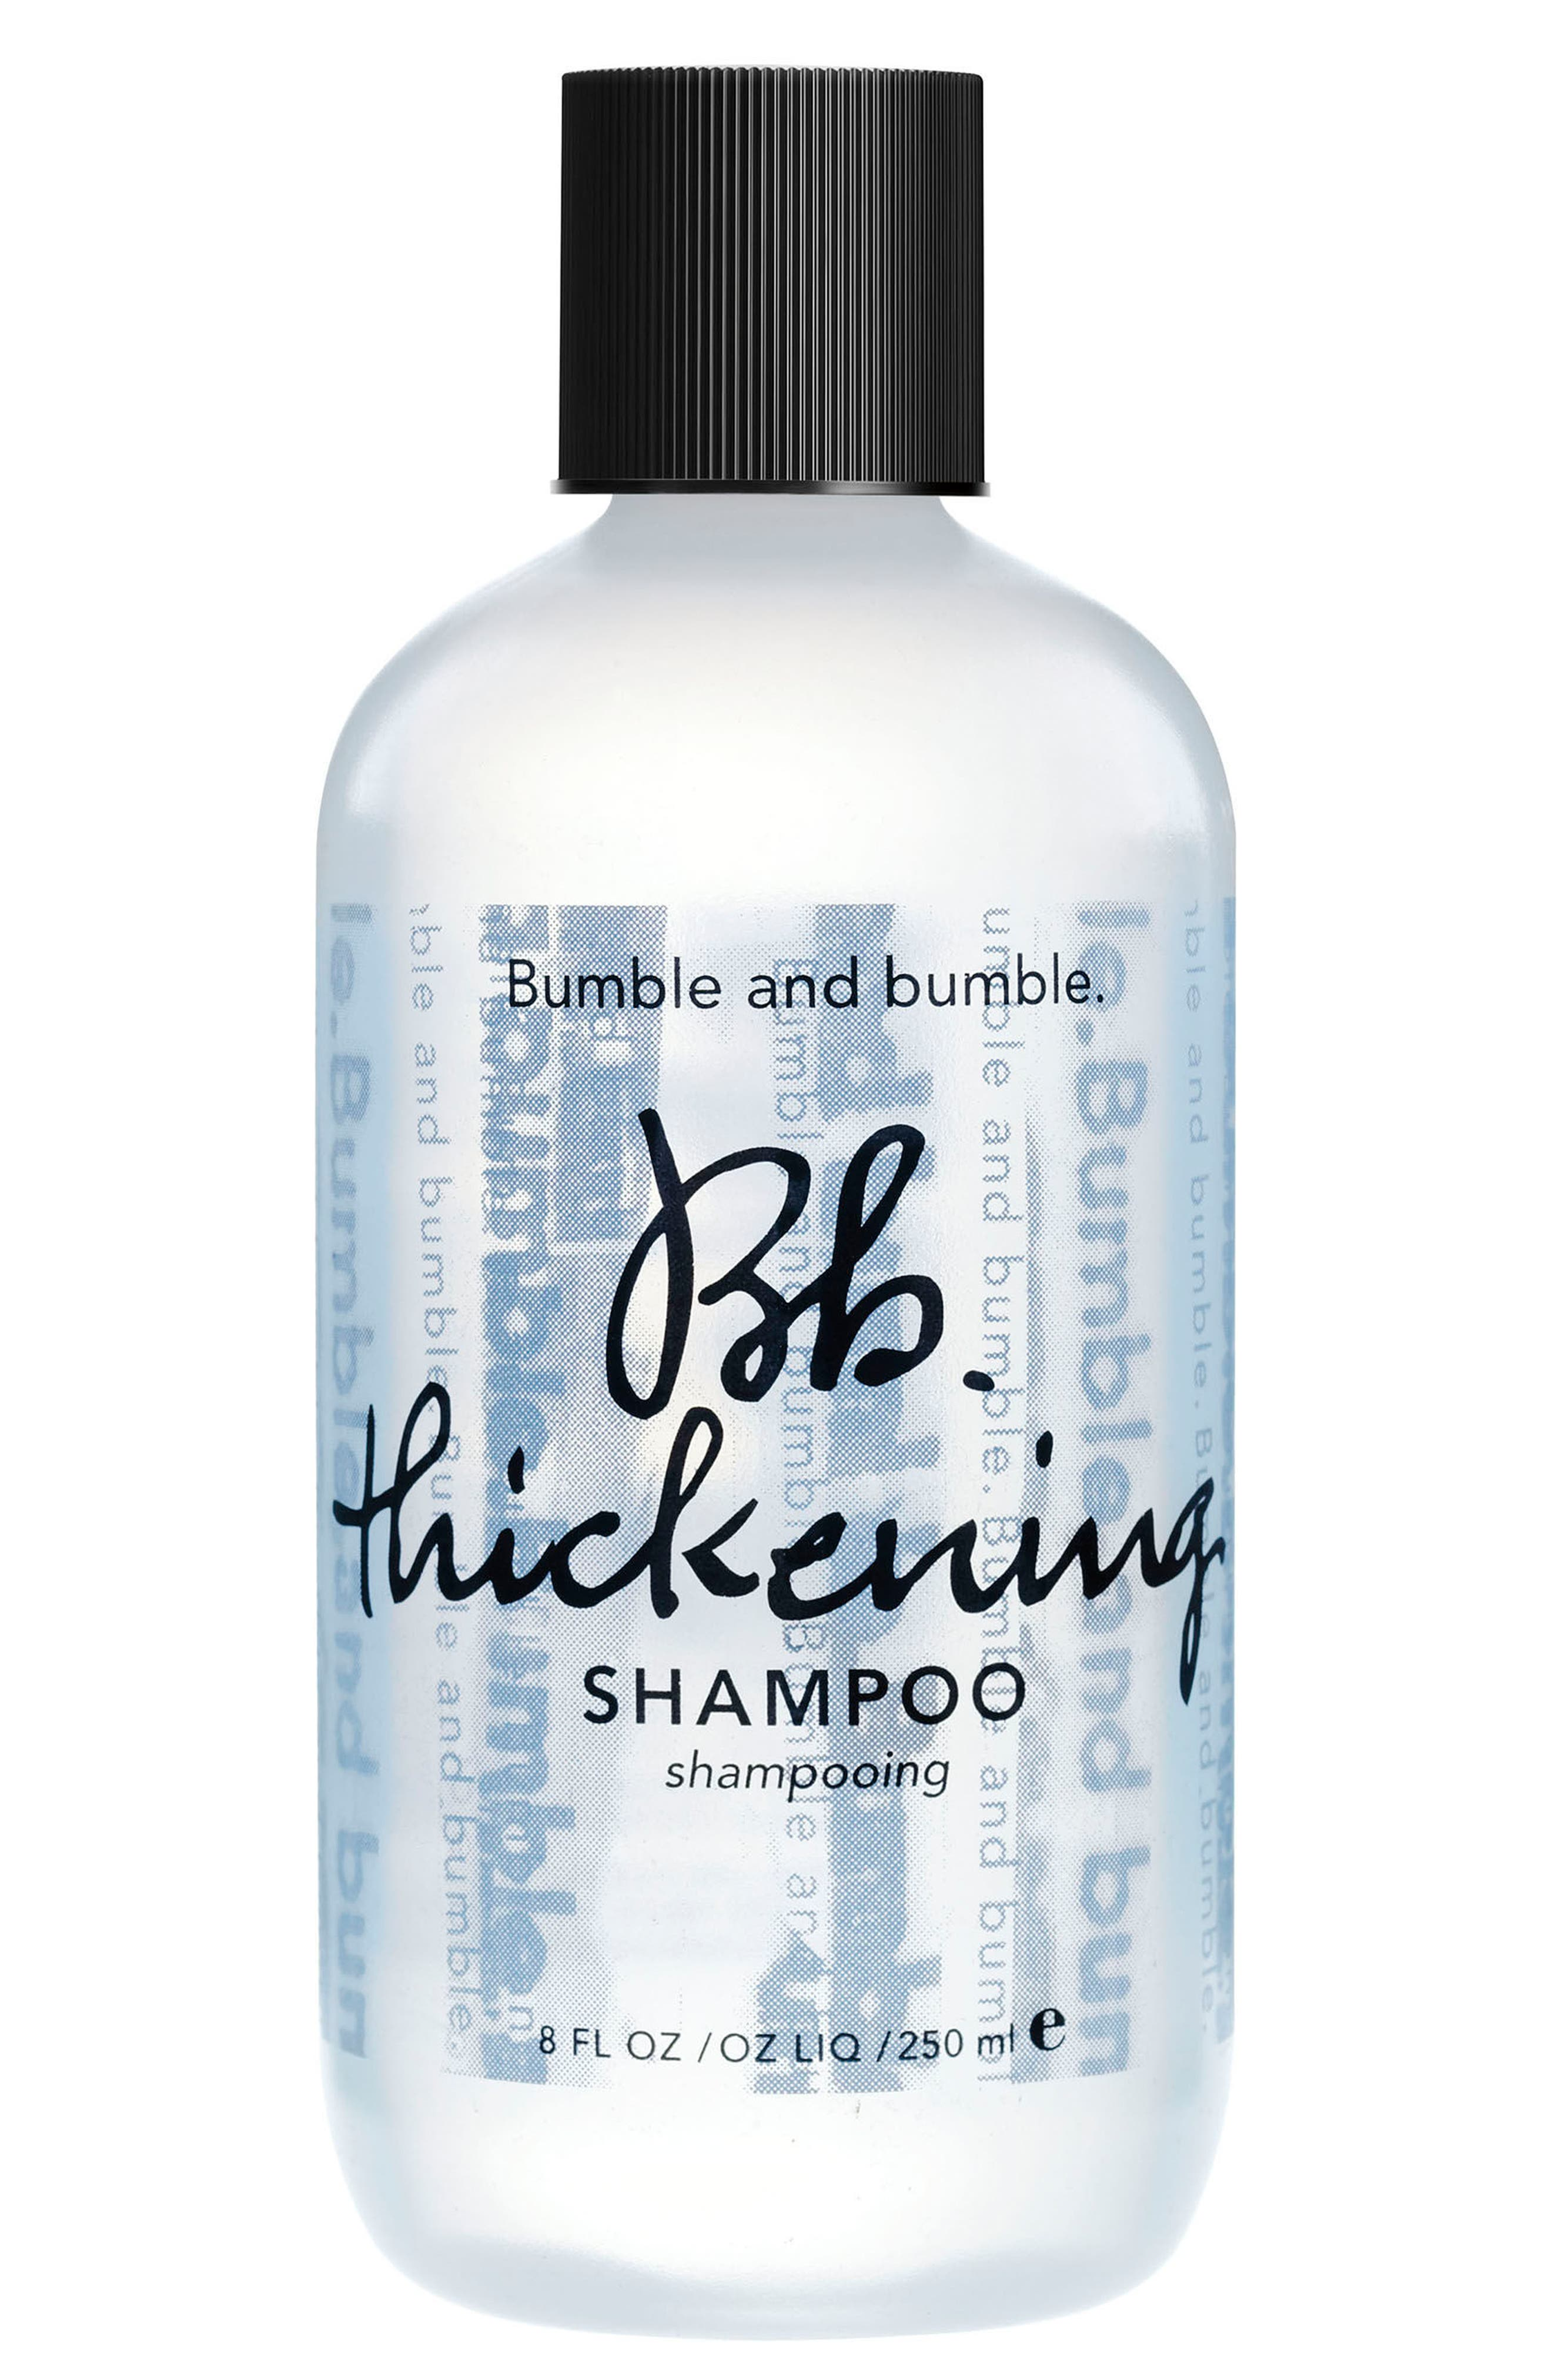 Alternate Image 1 Selected - Bumble and bumble Thickening Shampoo